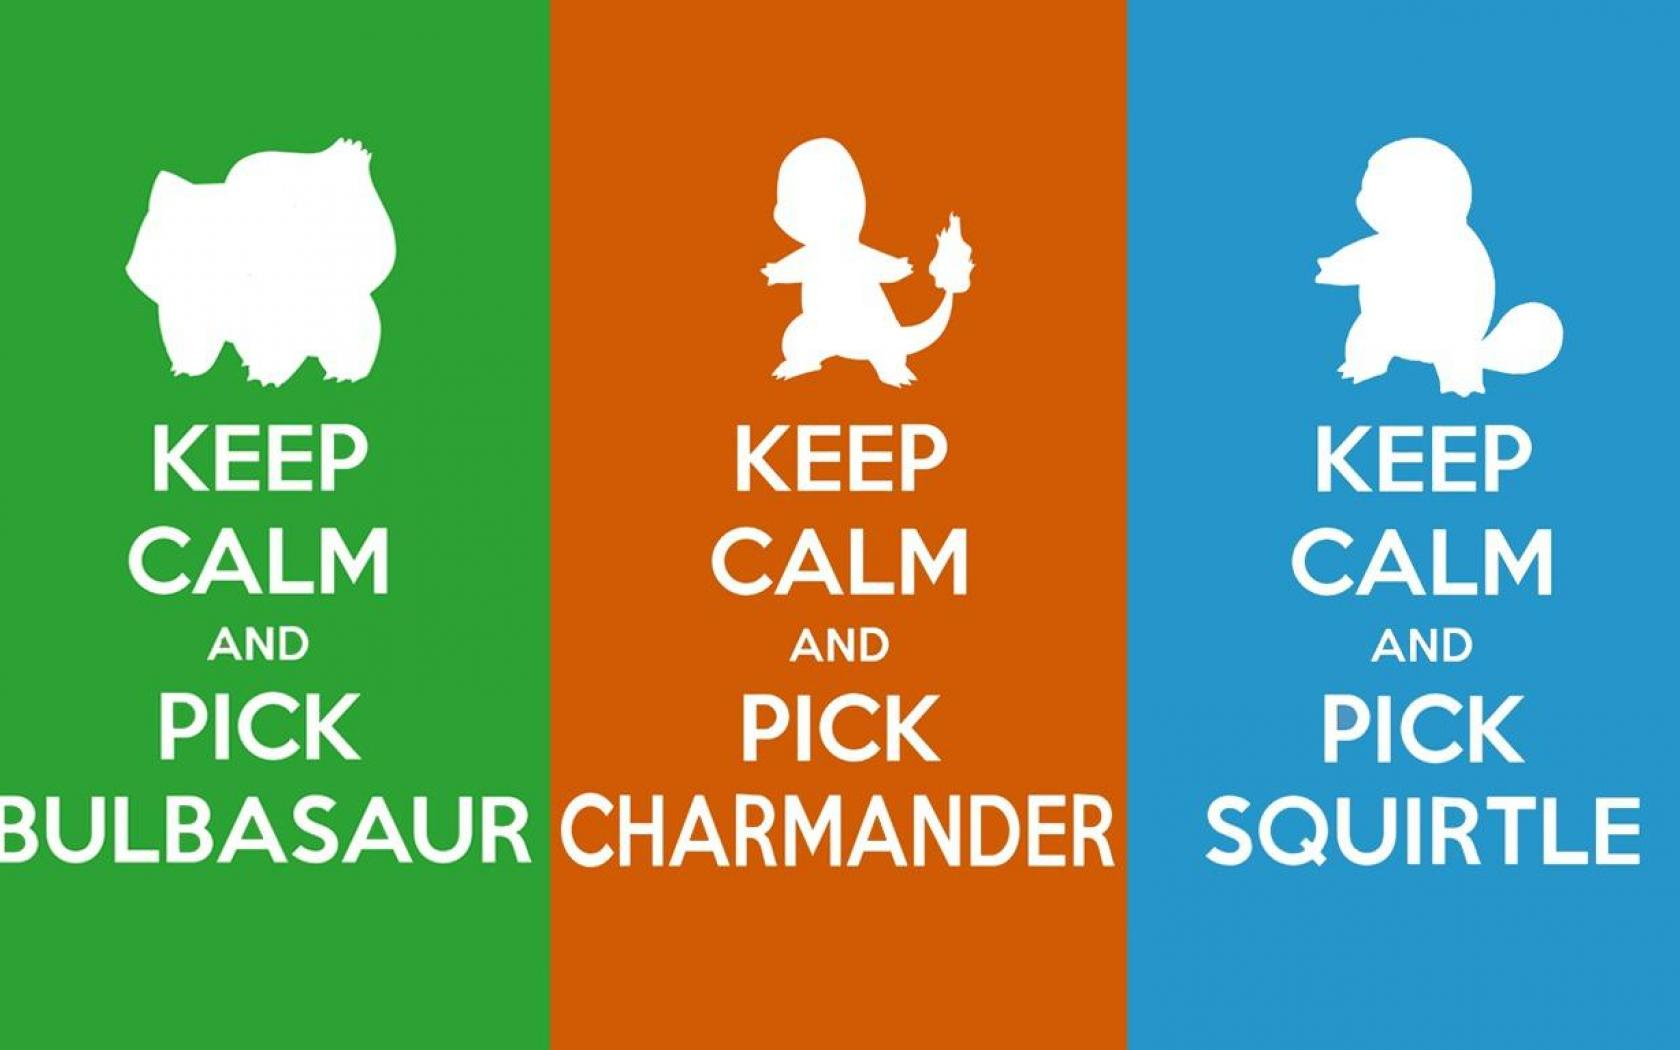 Keep Calm Green Pokemon Bulbasaur